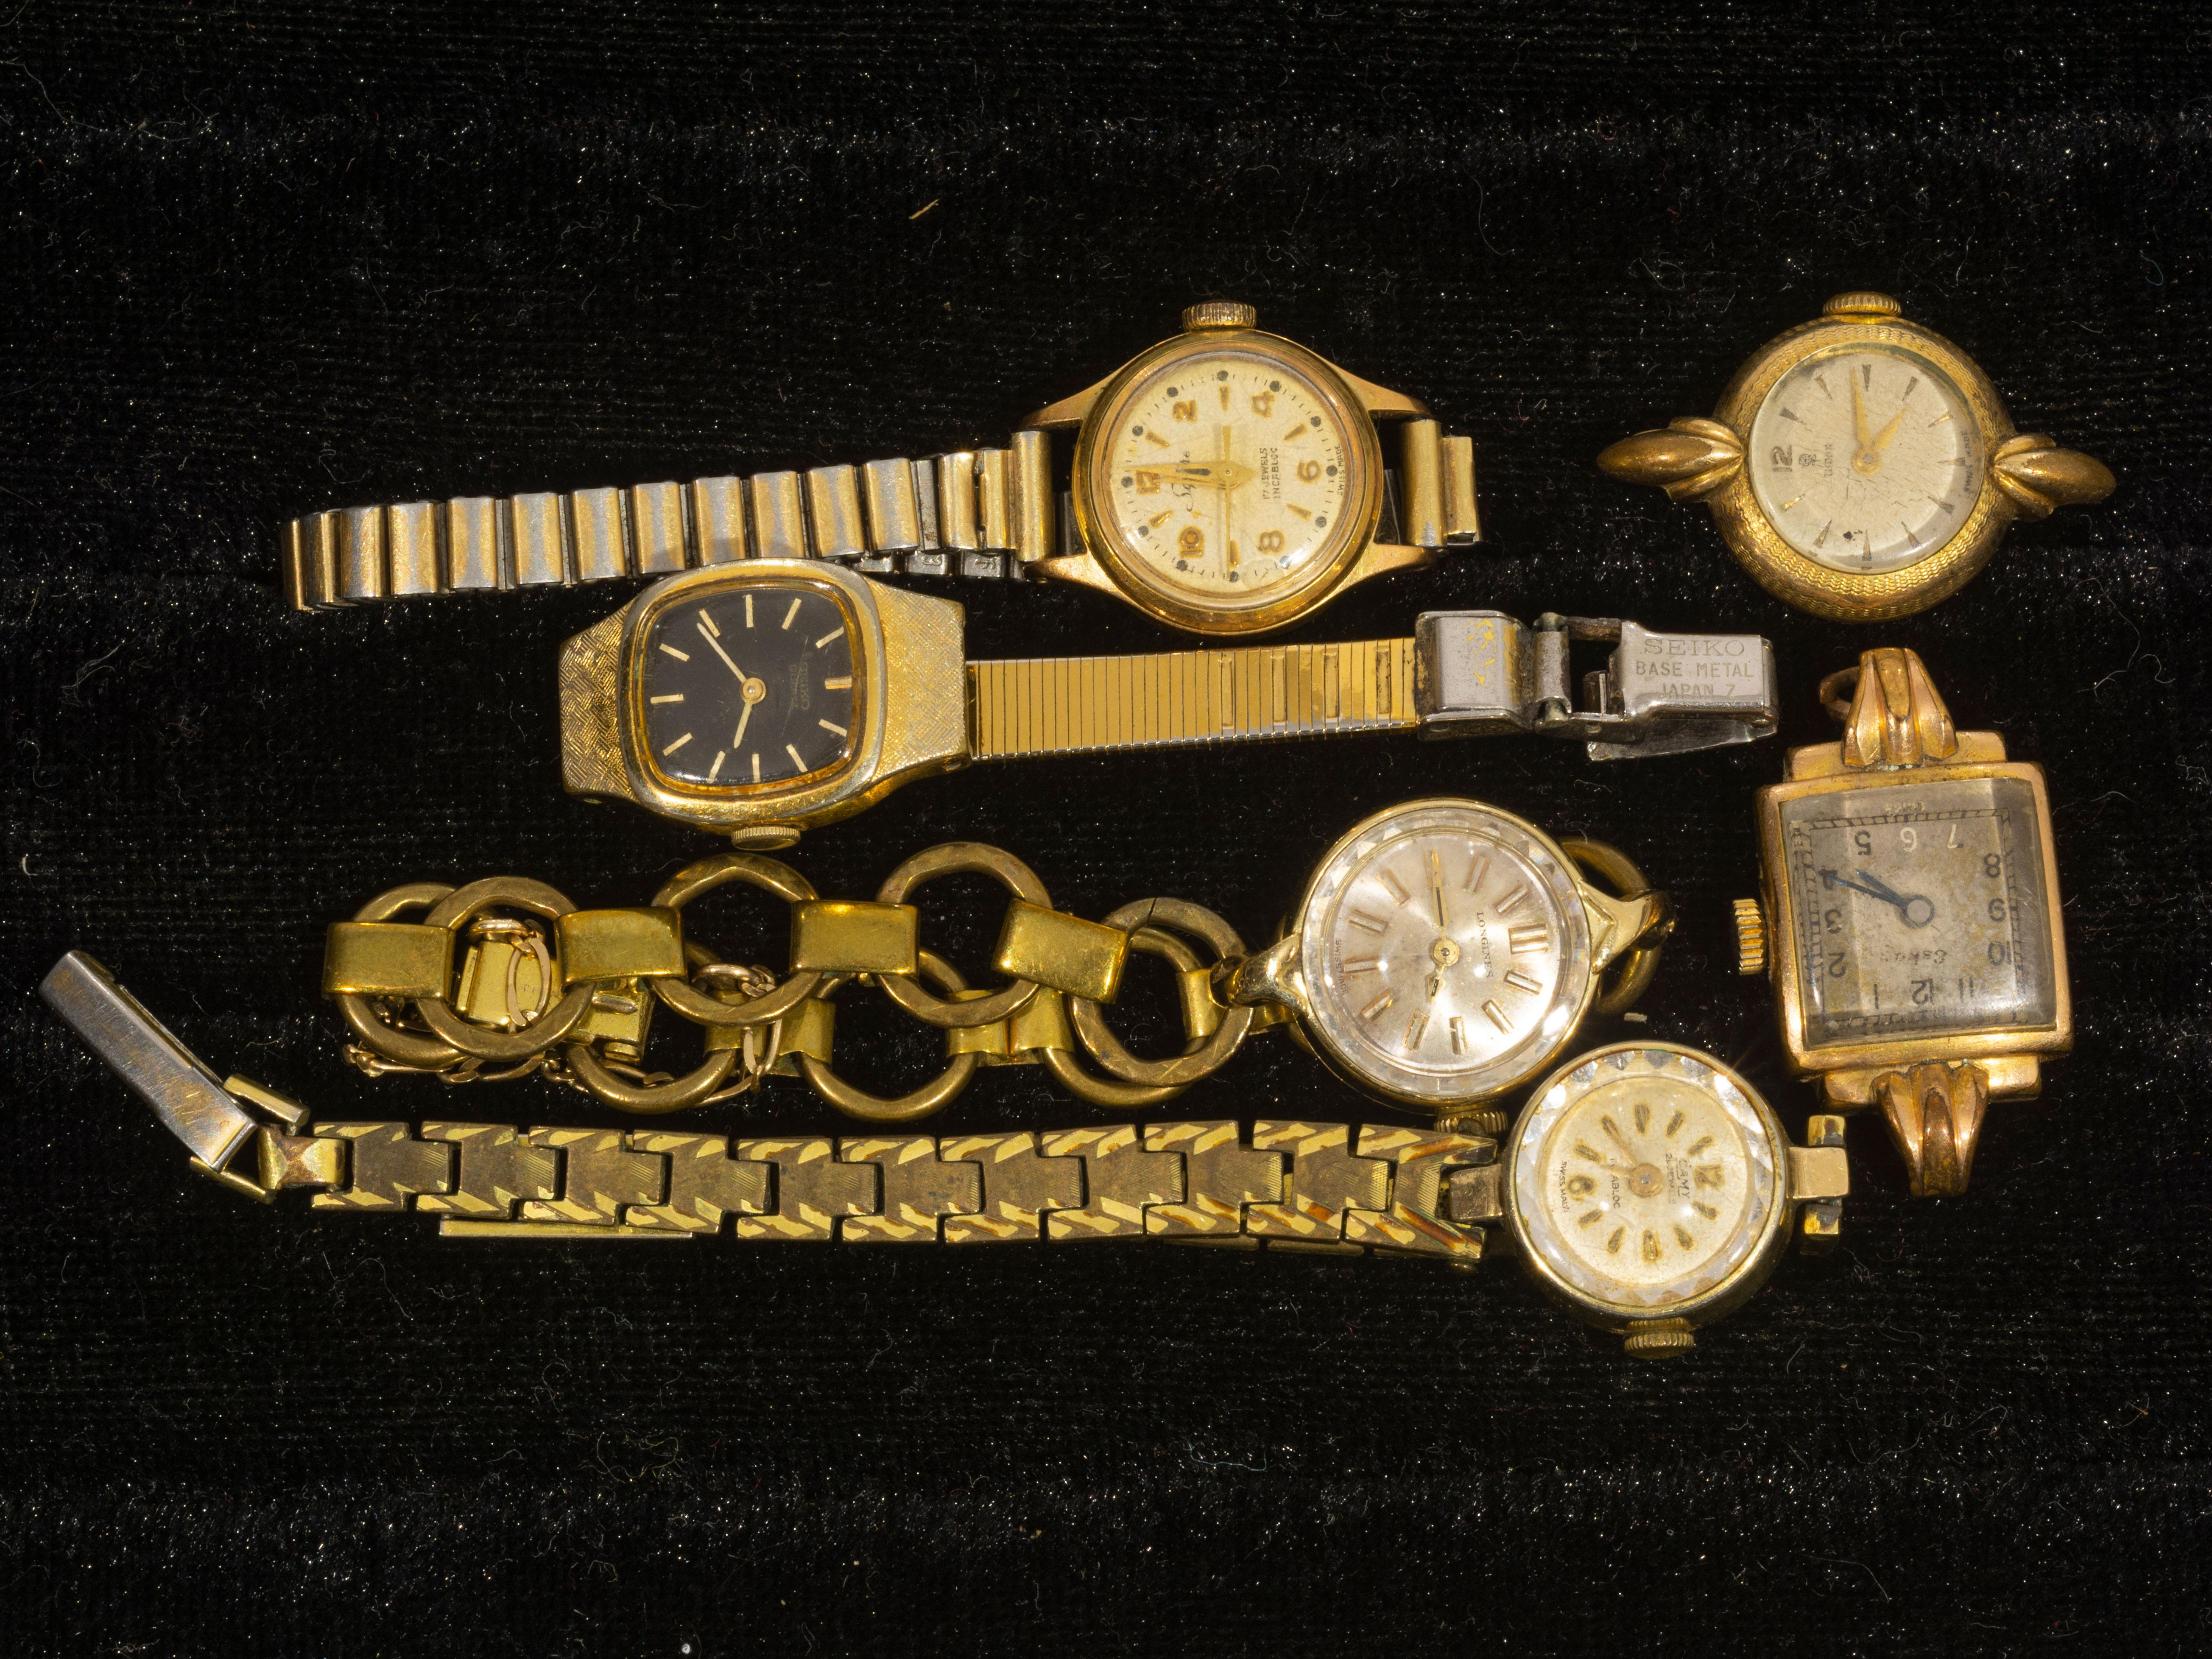 A Job Lot of Ladies Wristwatches, A/F